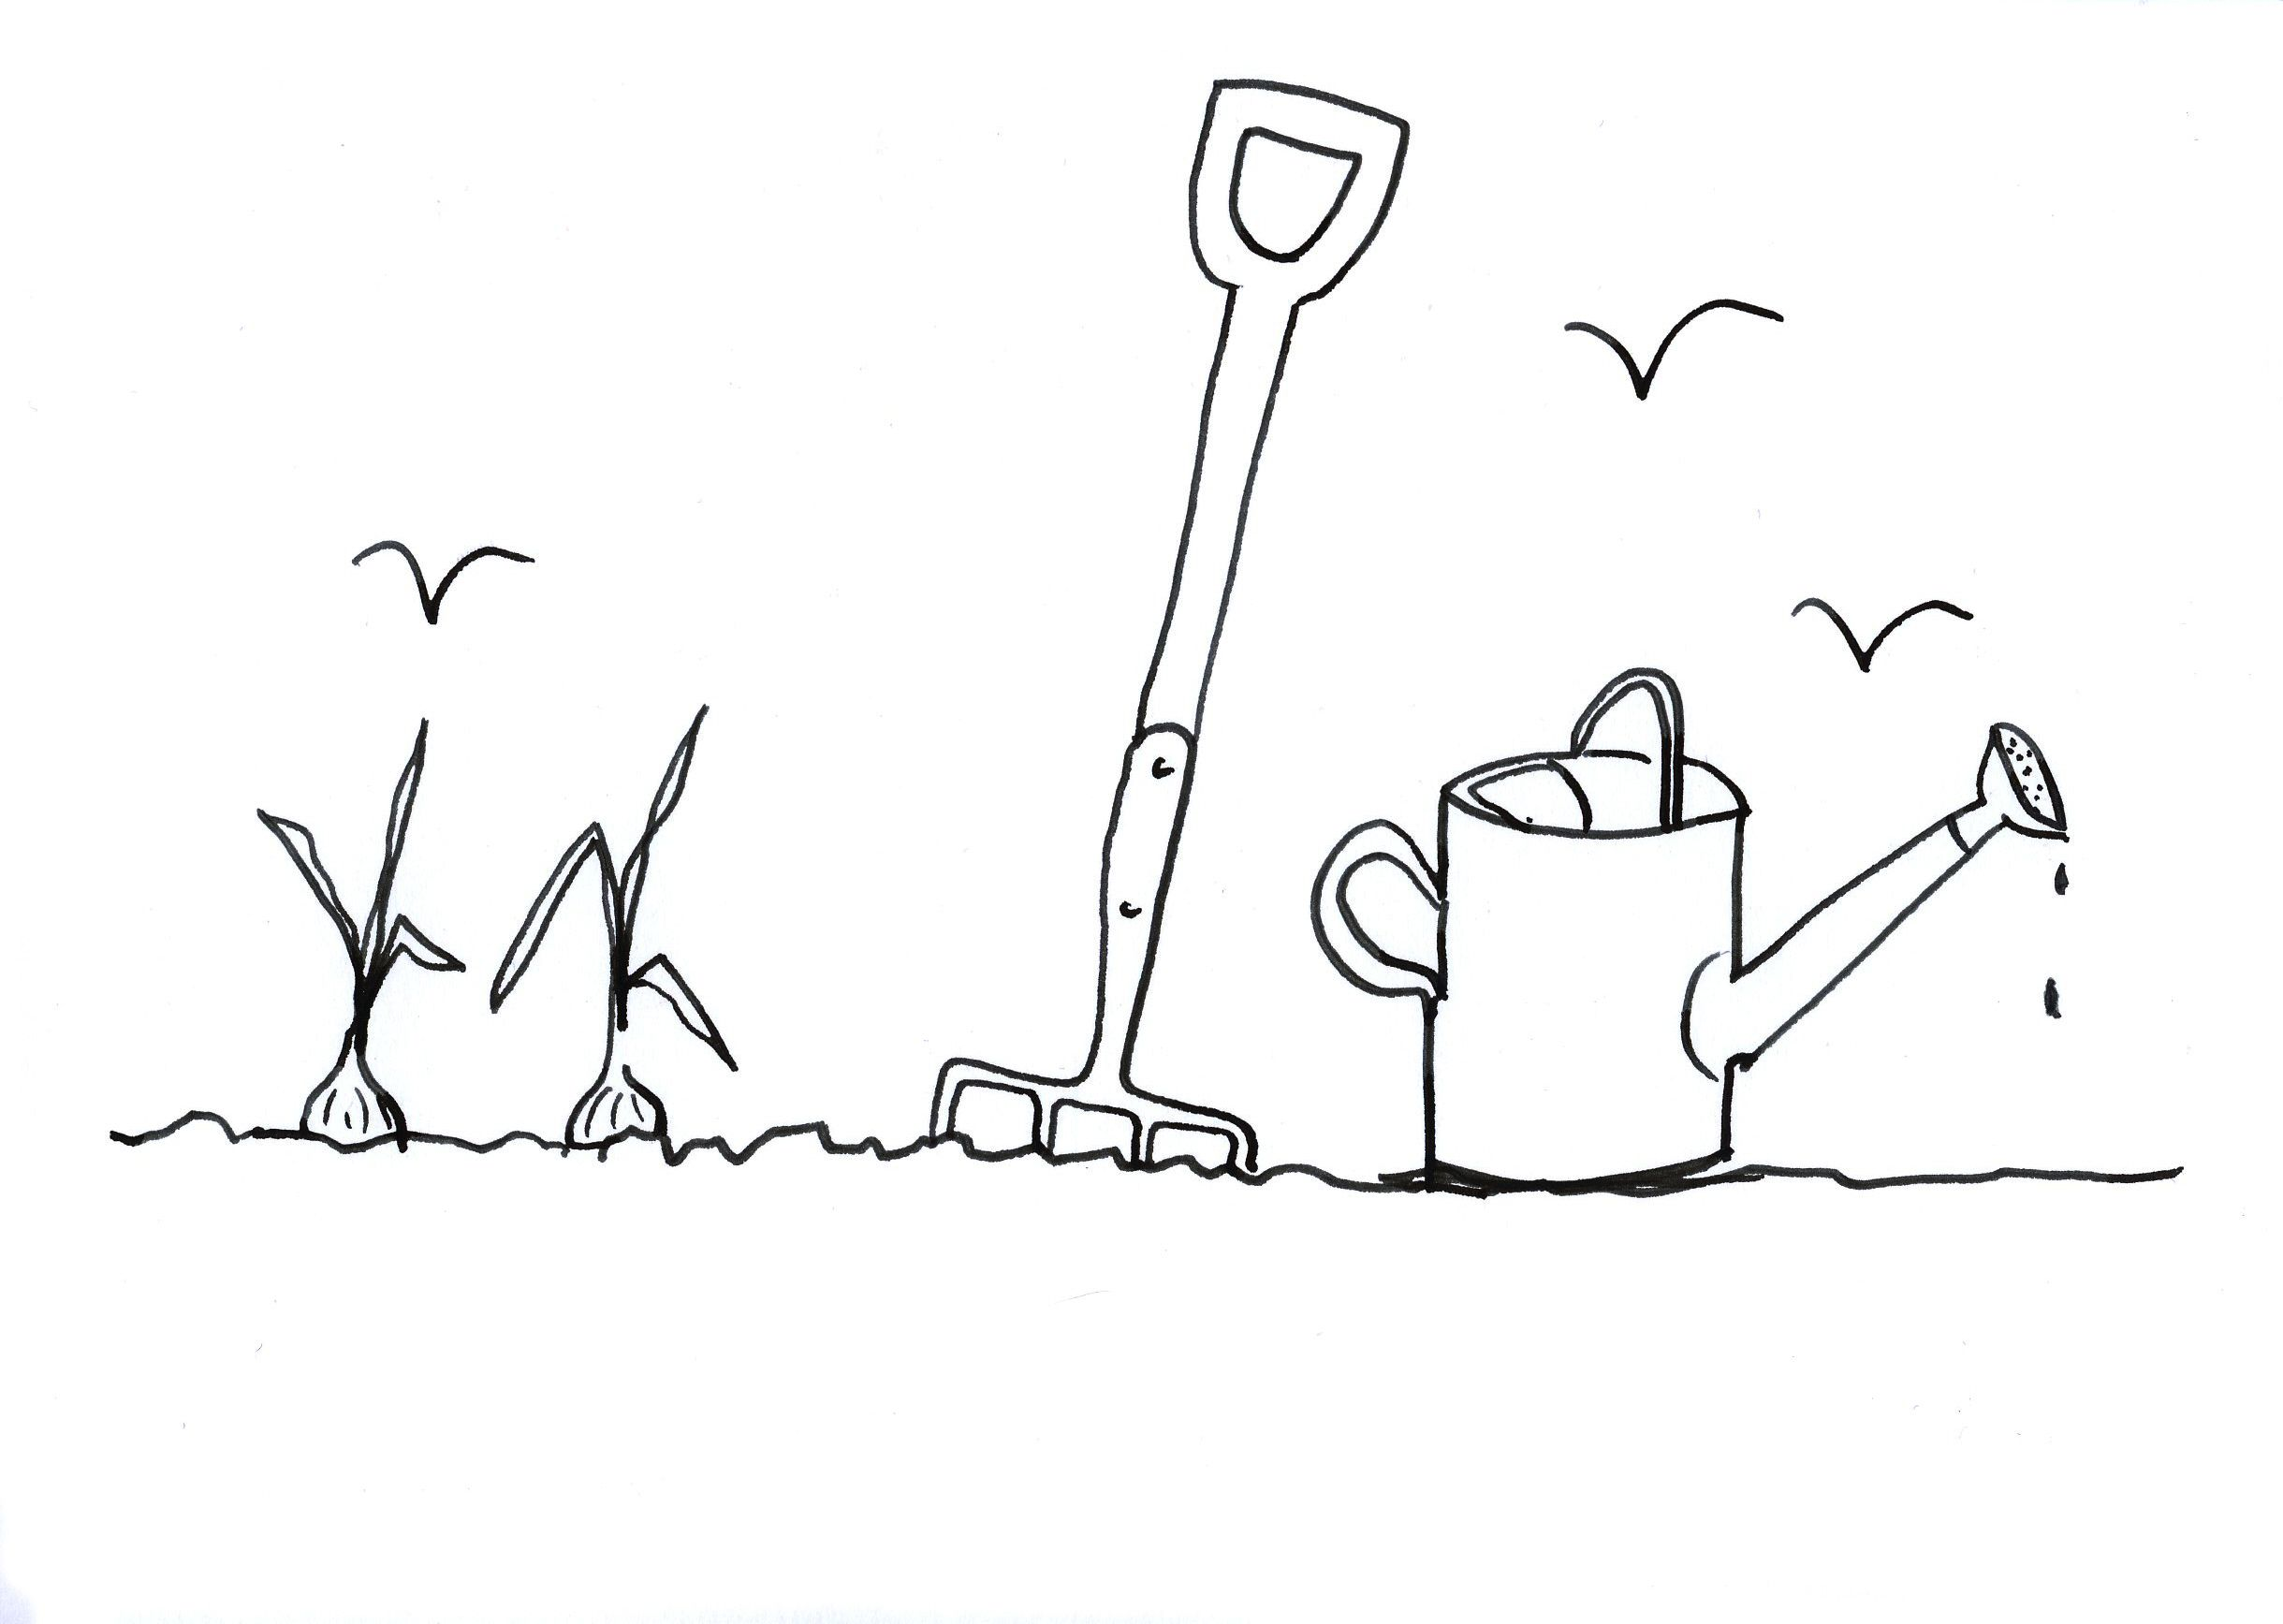 Doodle by Alan Titchmarsh for National Doodle Day 2014